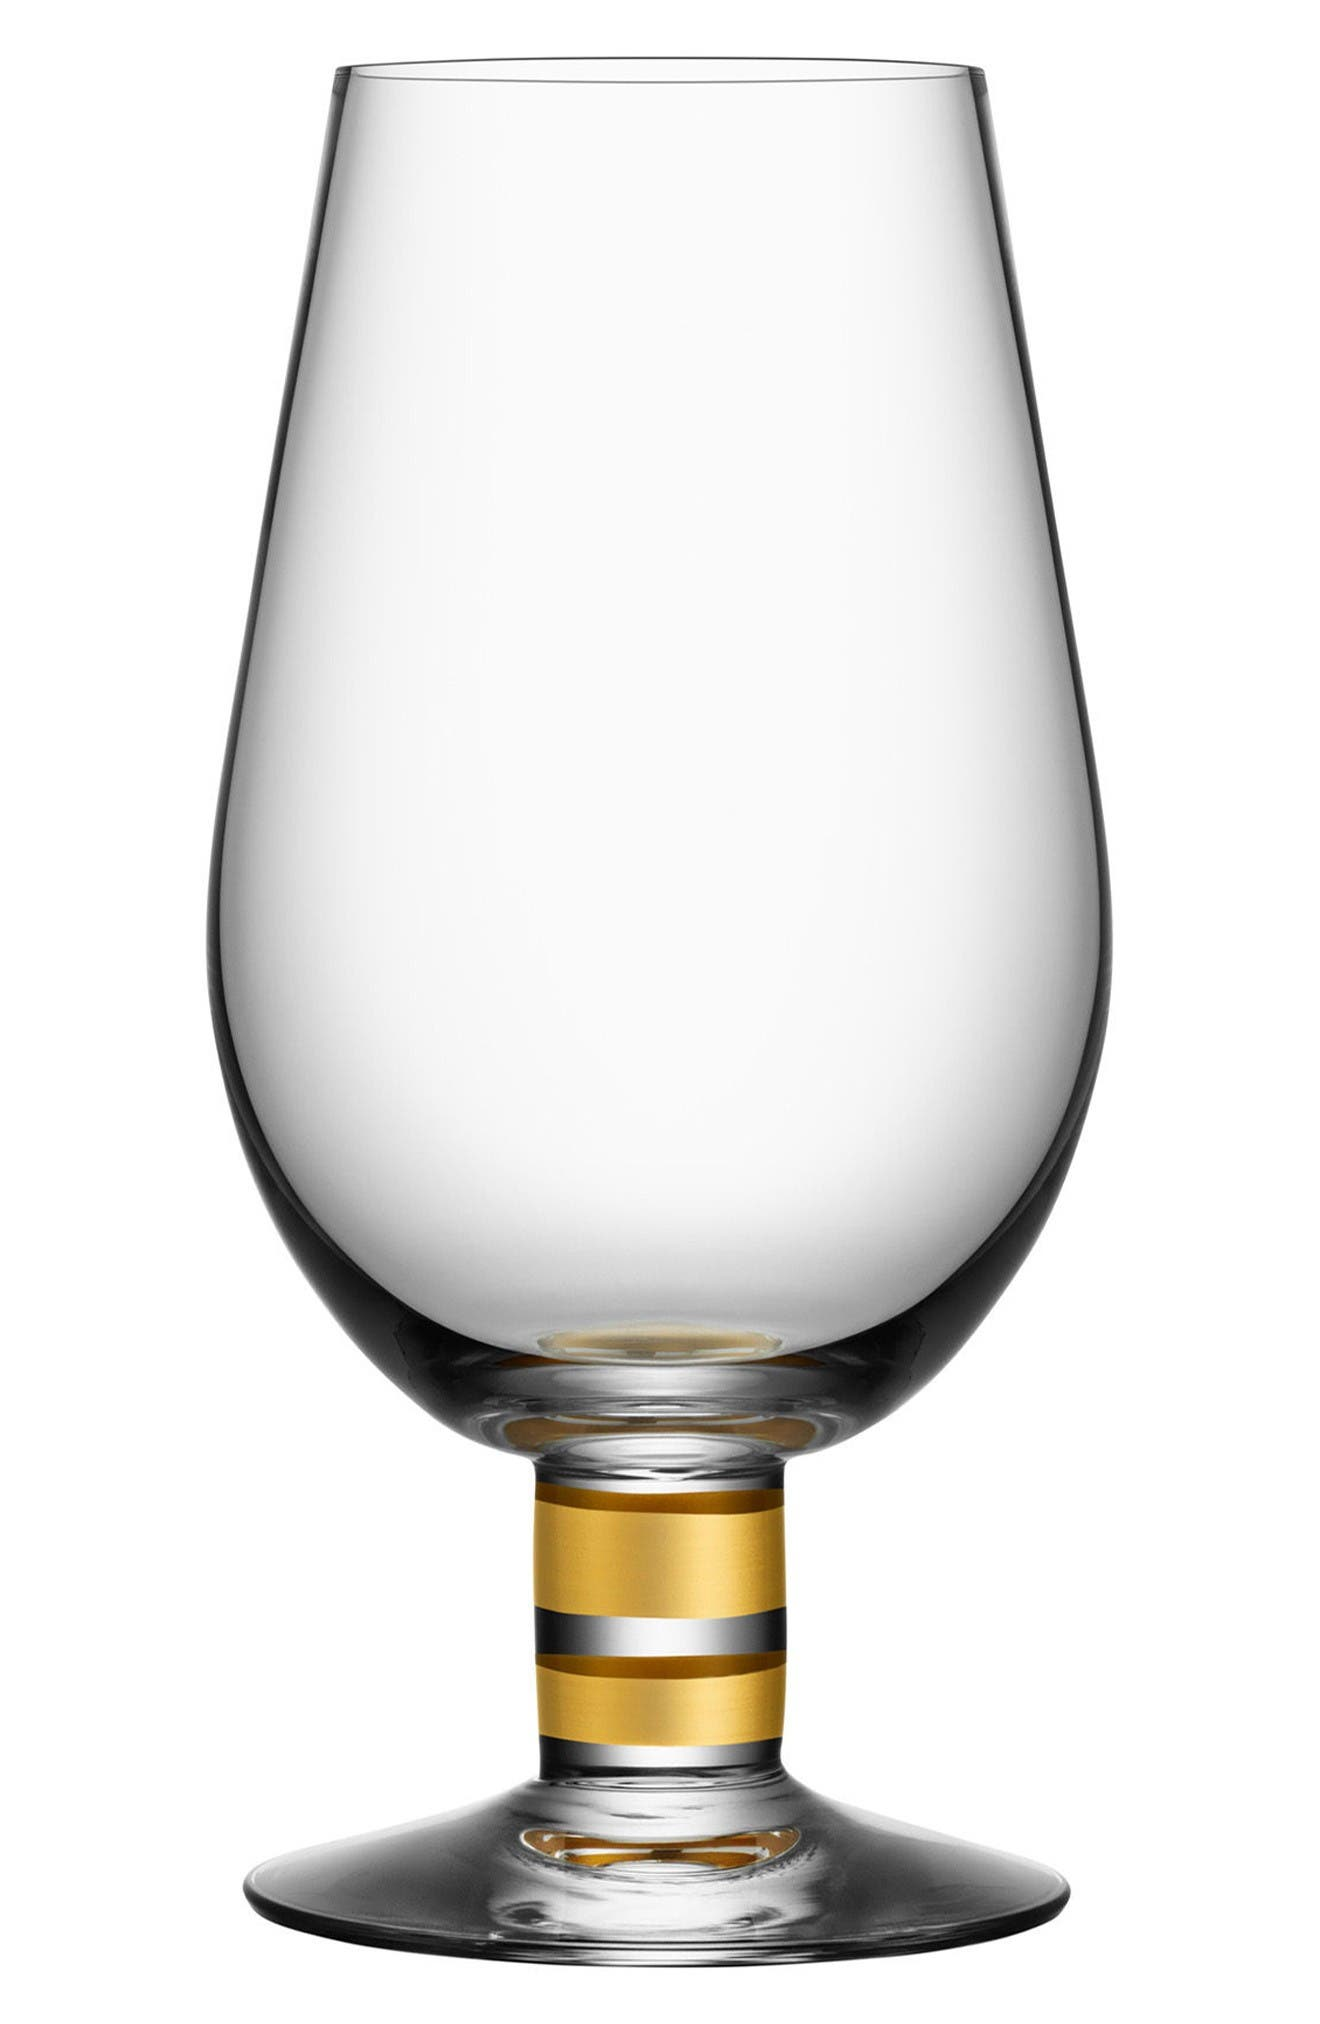 Orrefors Morberg Collection Set of 2 Footed Crystal Beer Glasses (Nordstrom Exclusive)